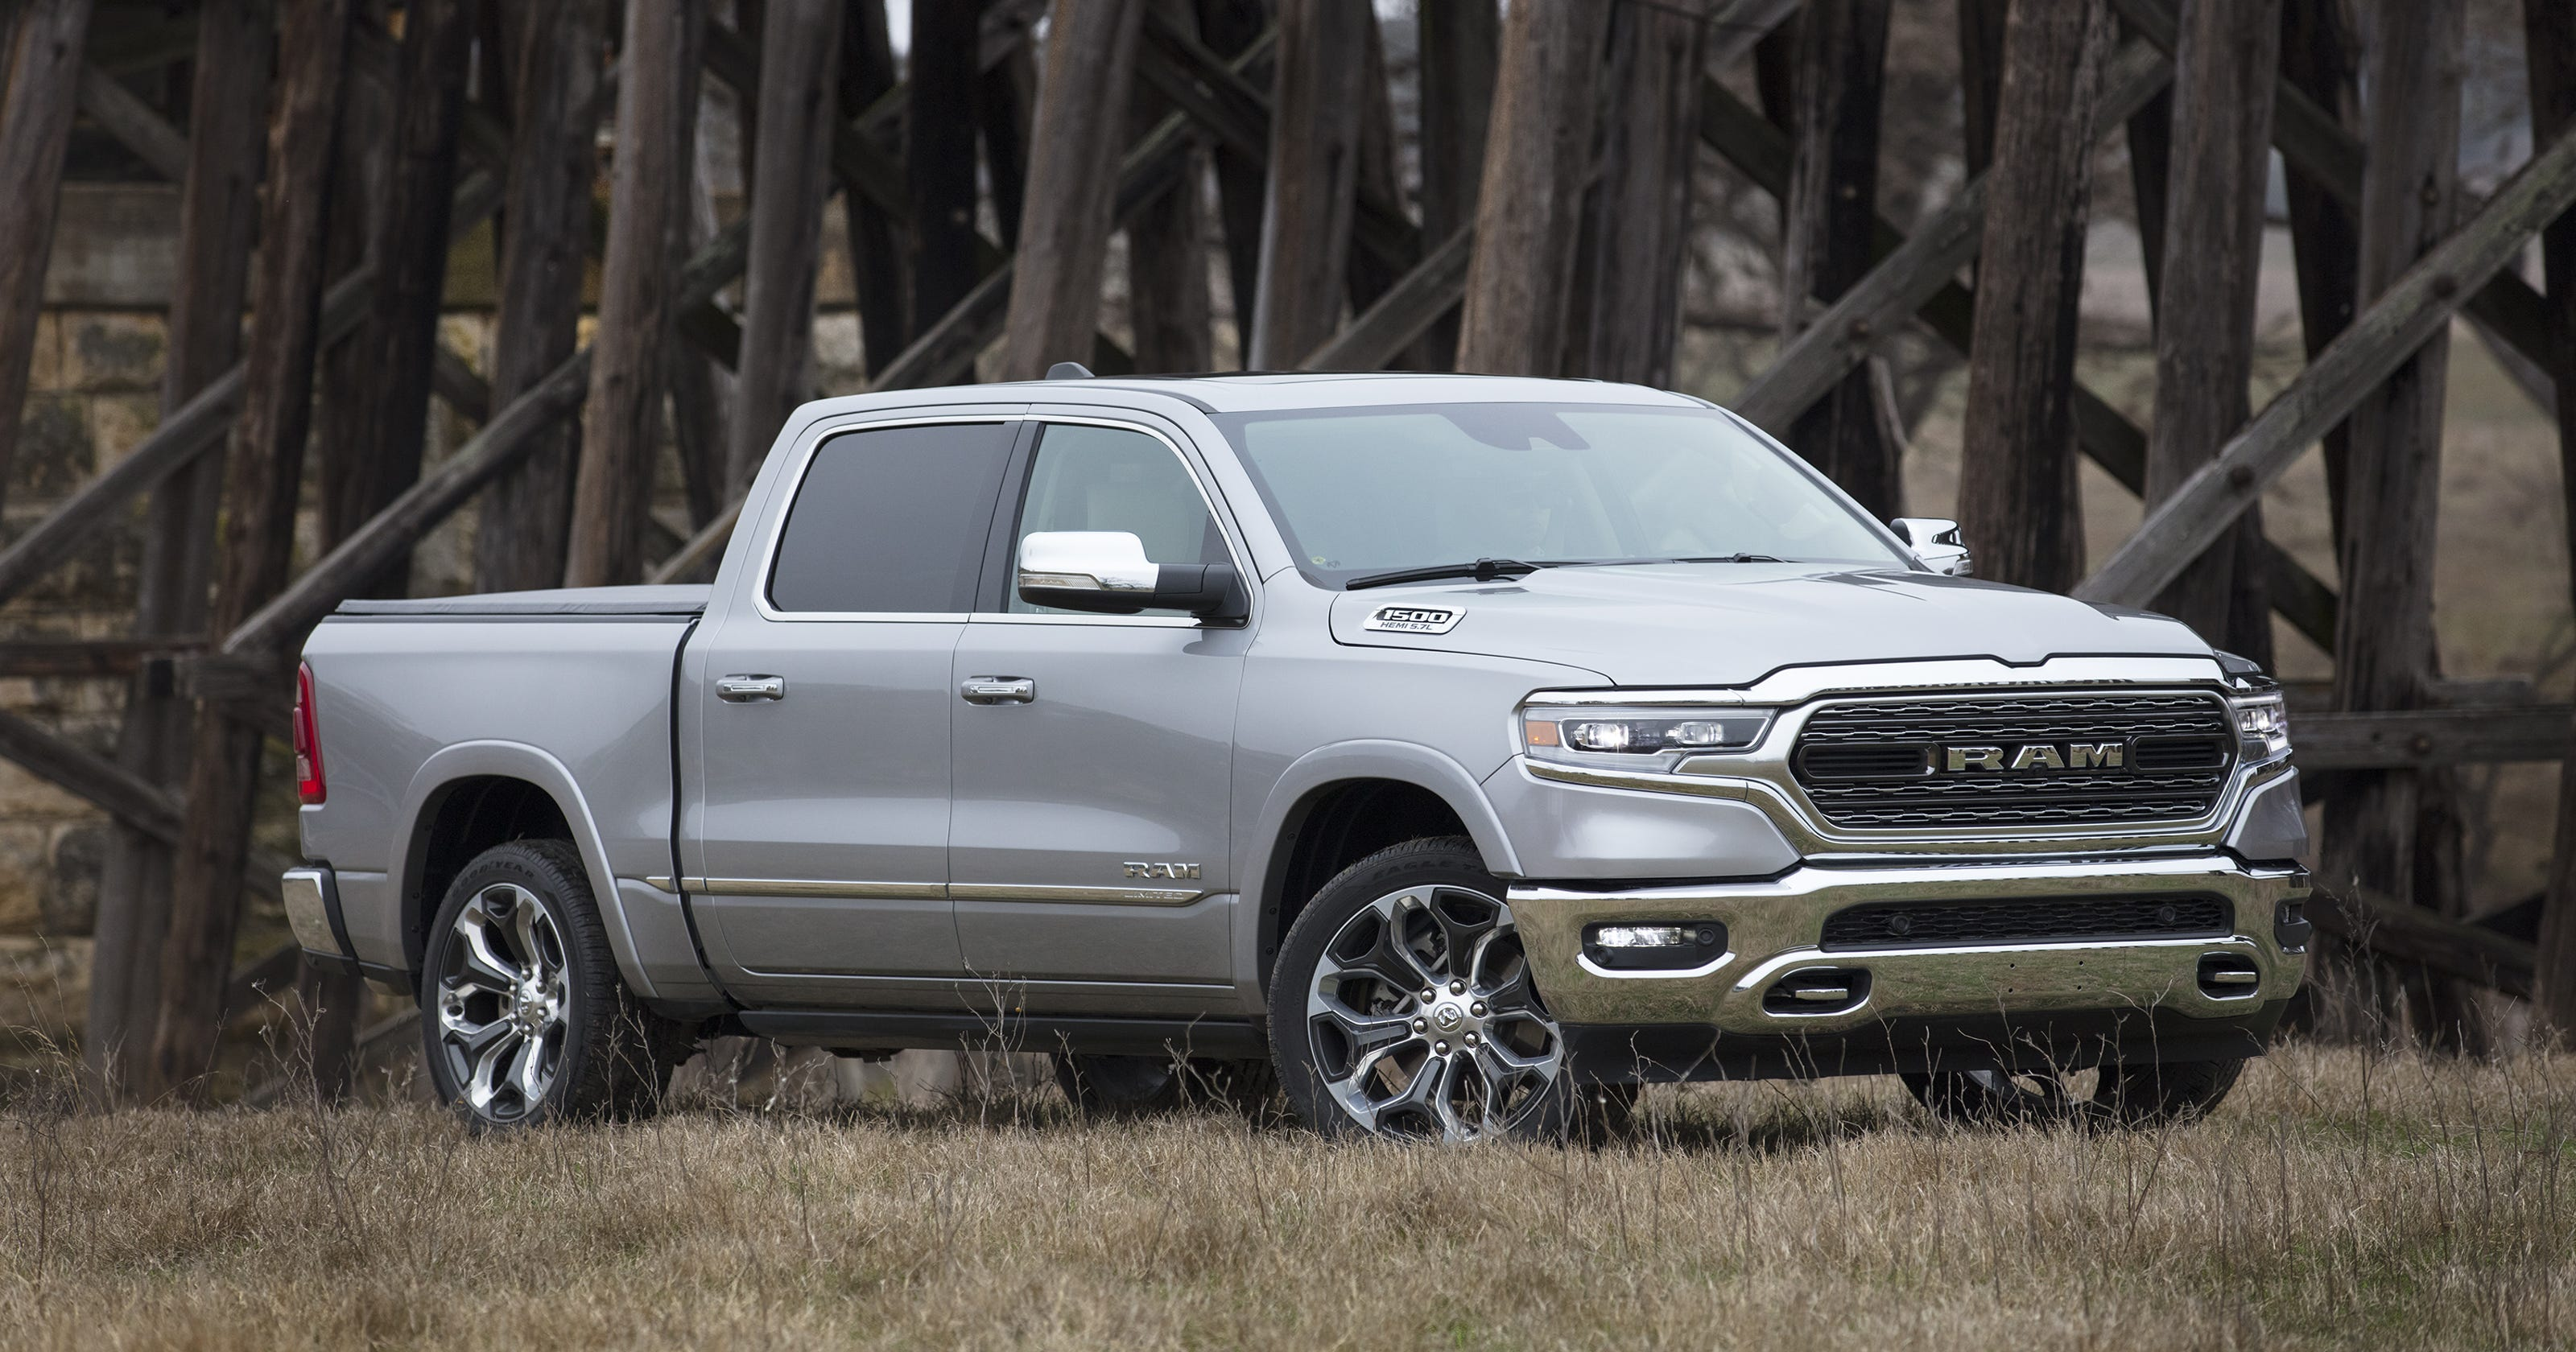 2019 Ram 1500 Pickup Truck Gets Jump On Chevrolet Silverado Gmc Sierra